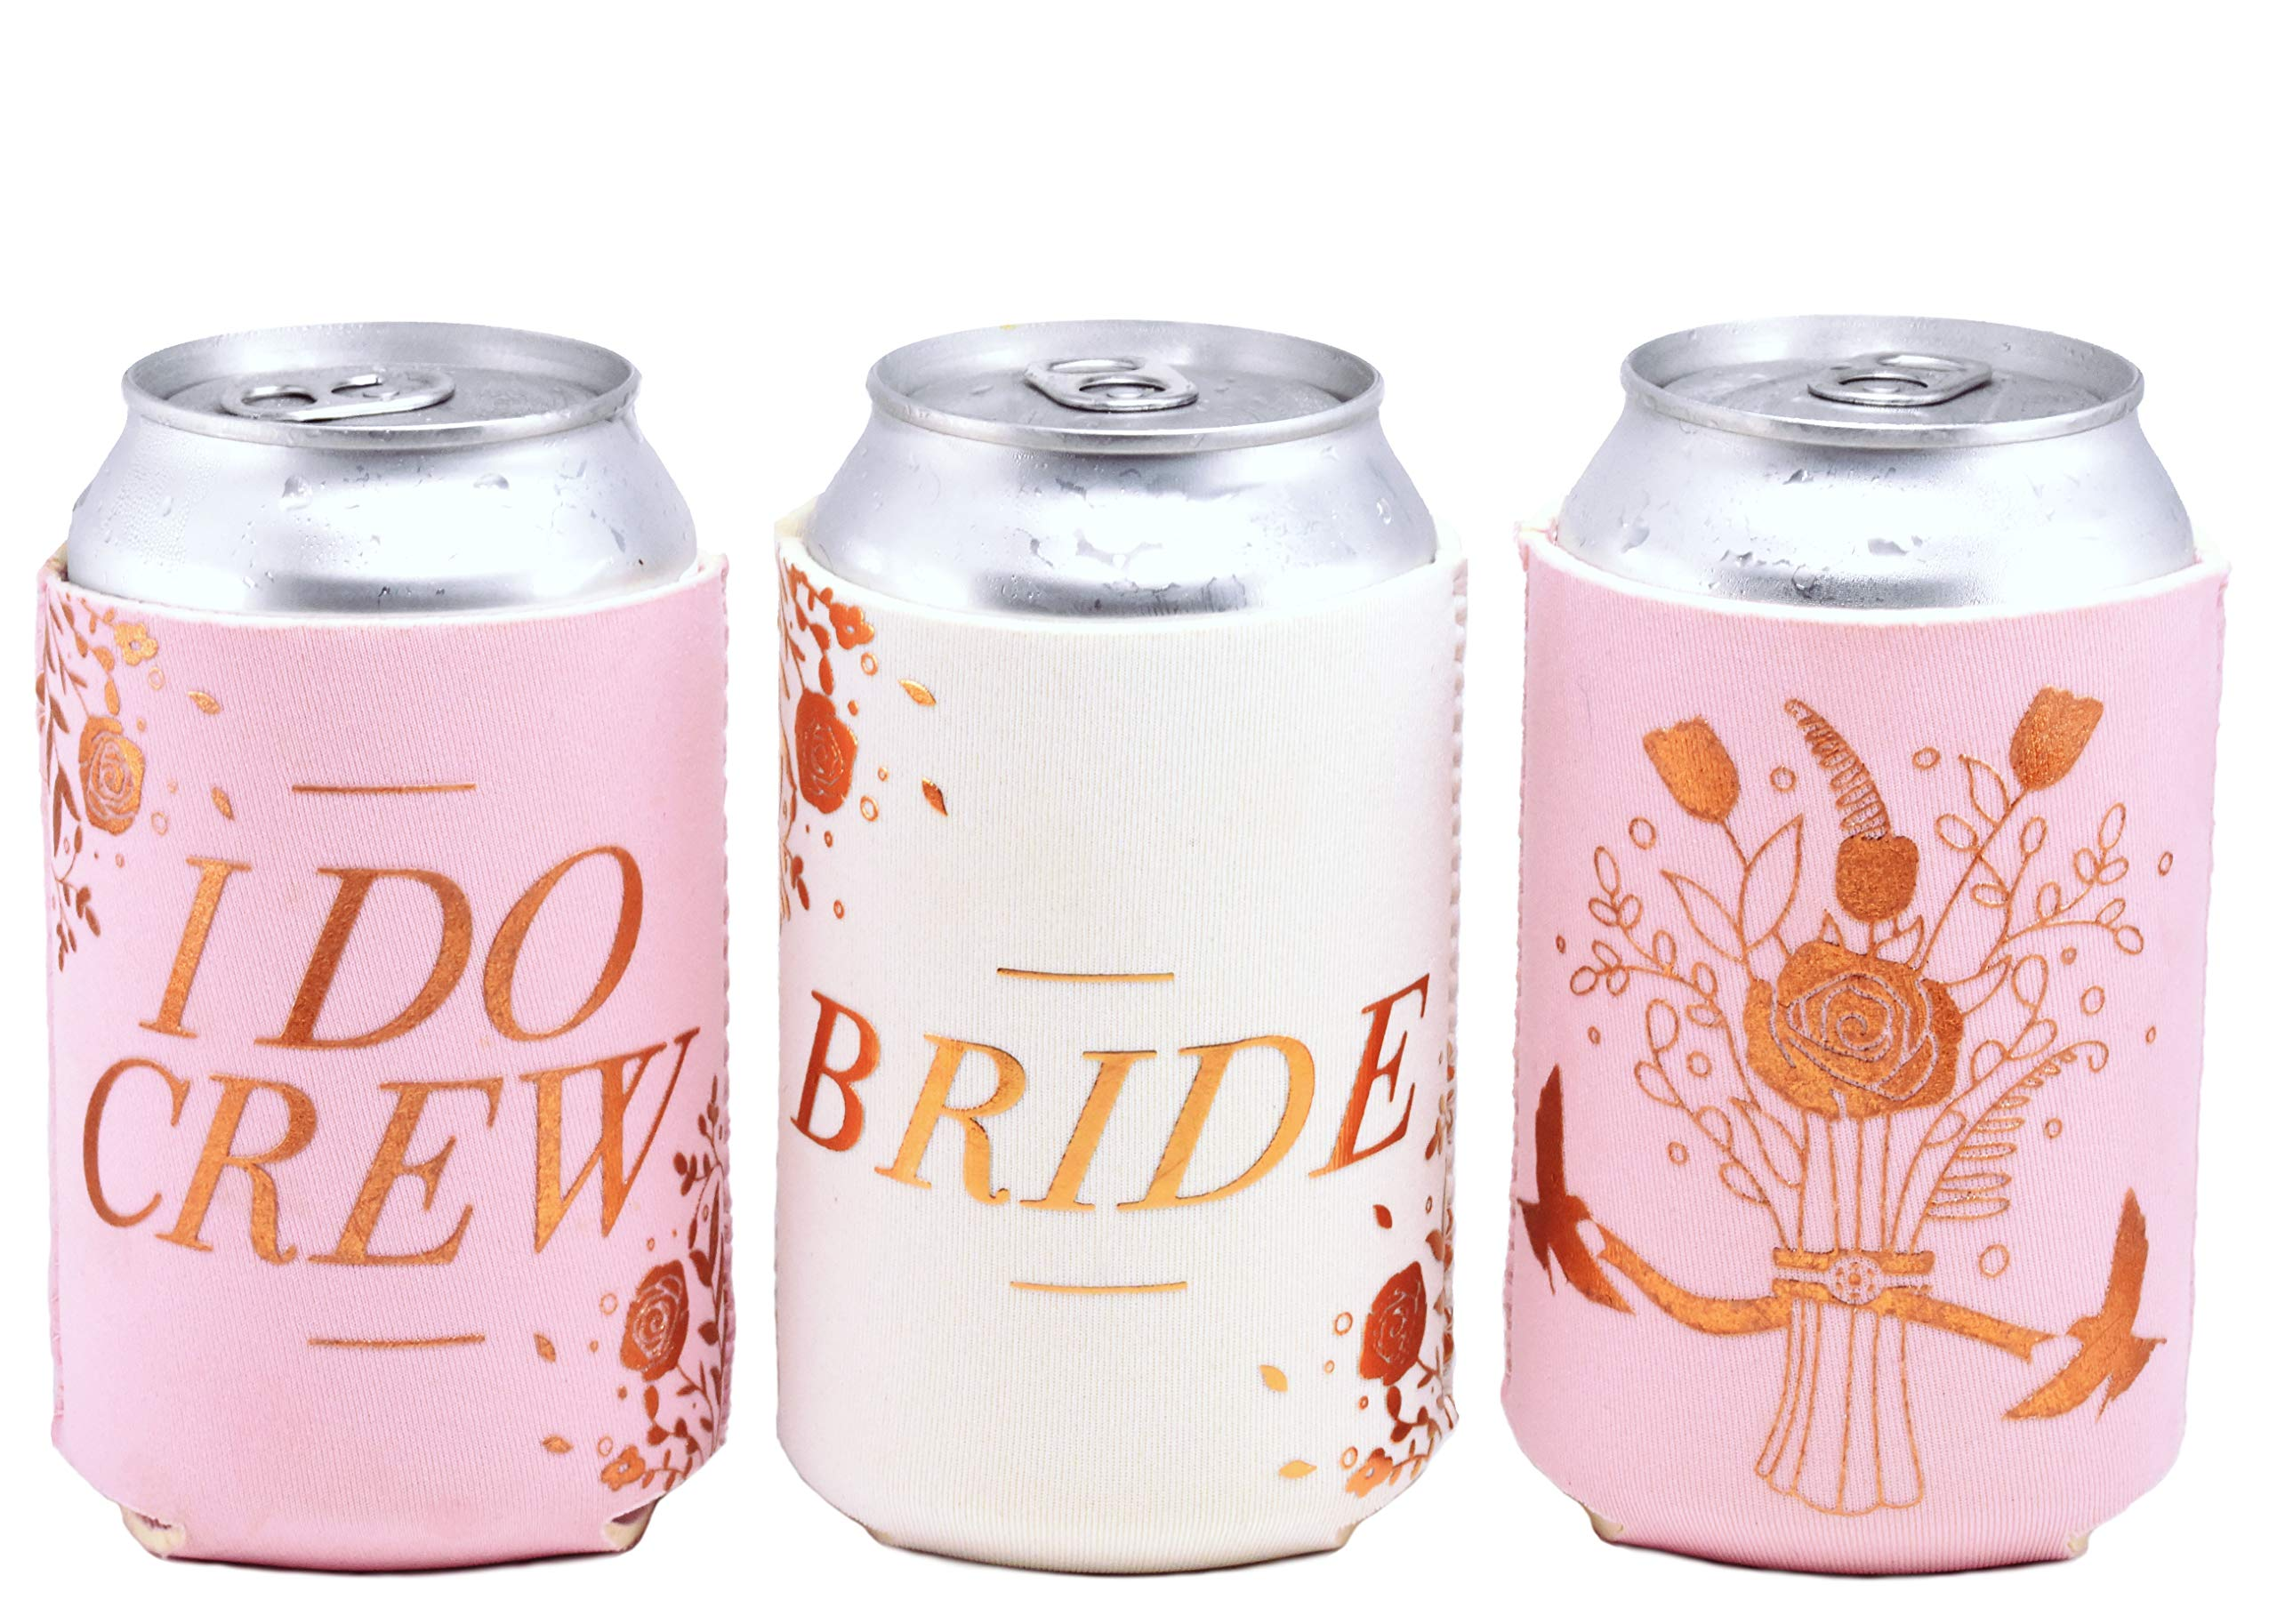 Amazon.com: Bachelorette Party I DO Crew 11 Pack, Bridal Shower ...